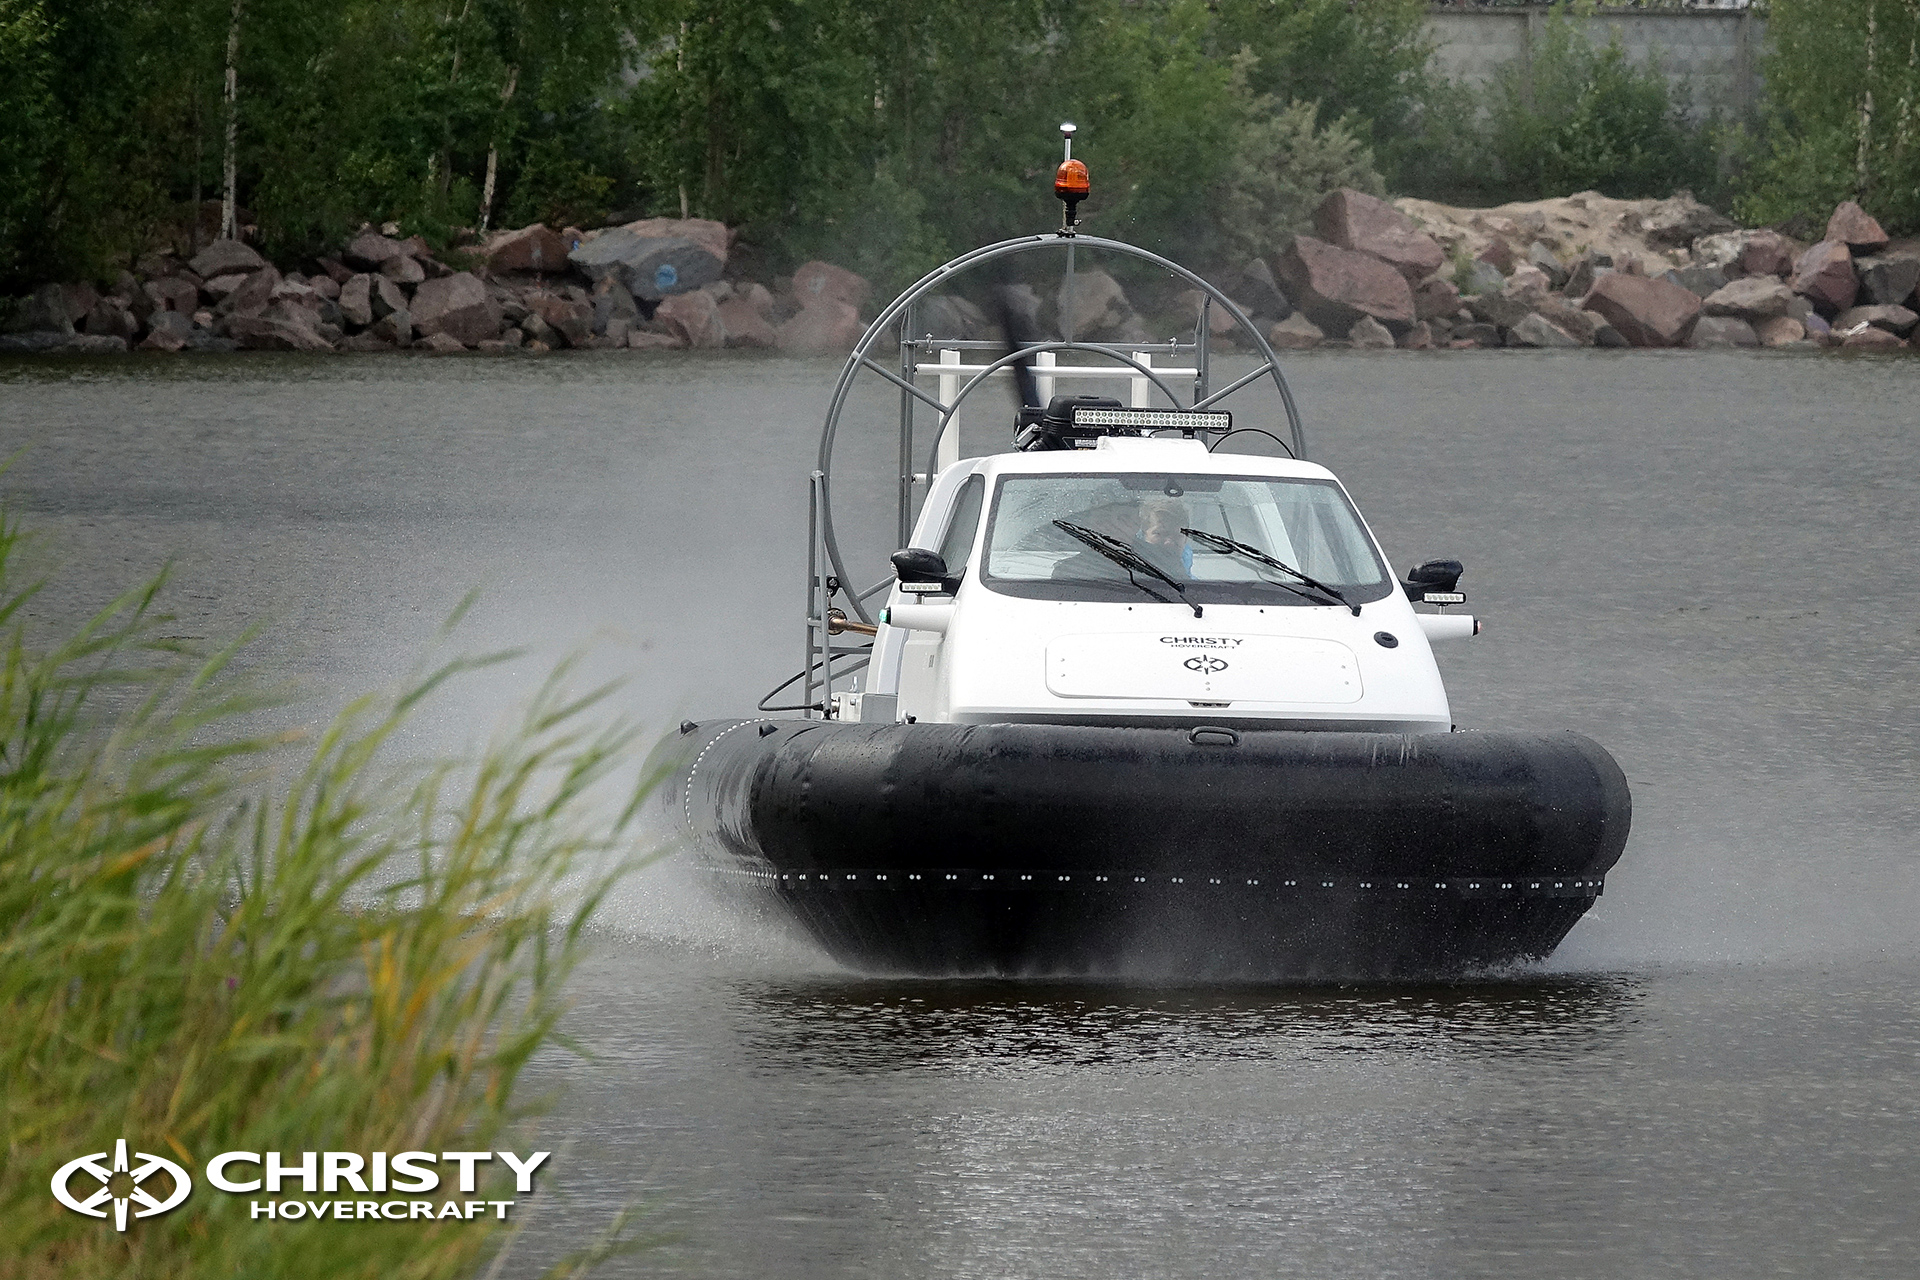 Hovercraft Christy 463 PC in Storm 290618 14.jpg | фото №12